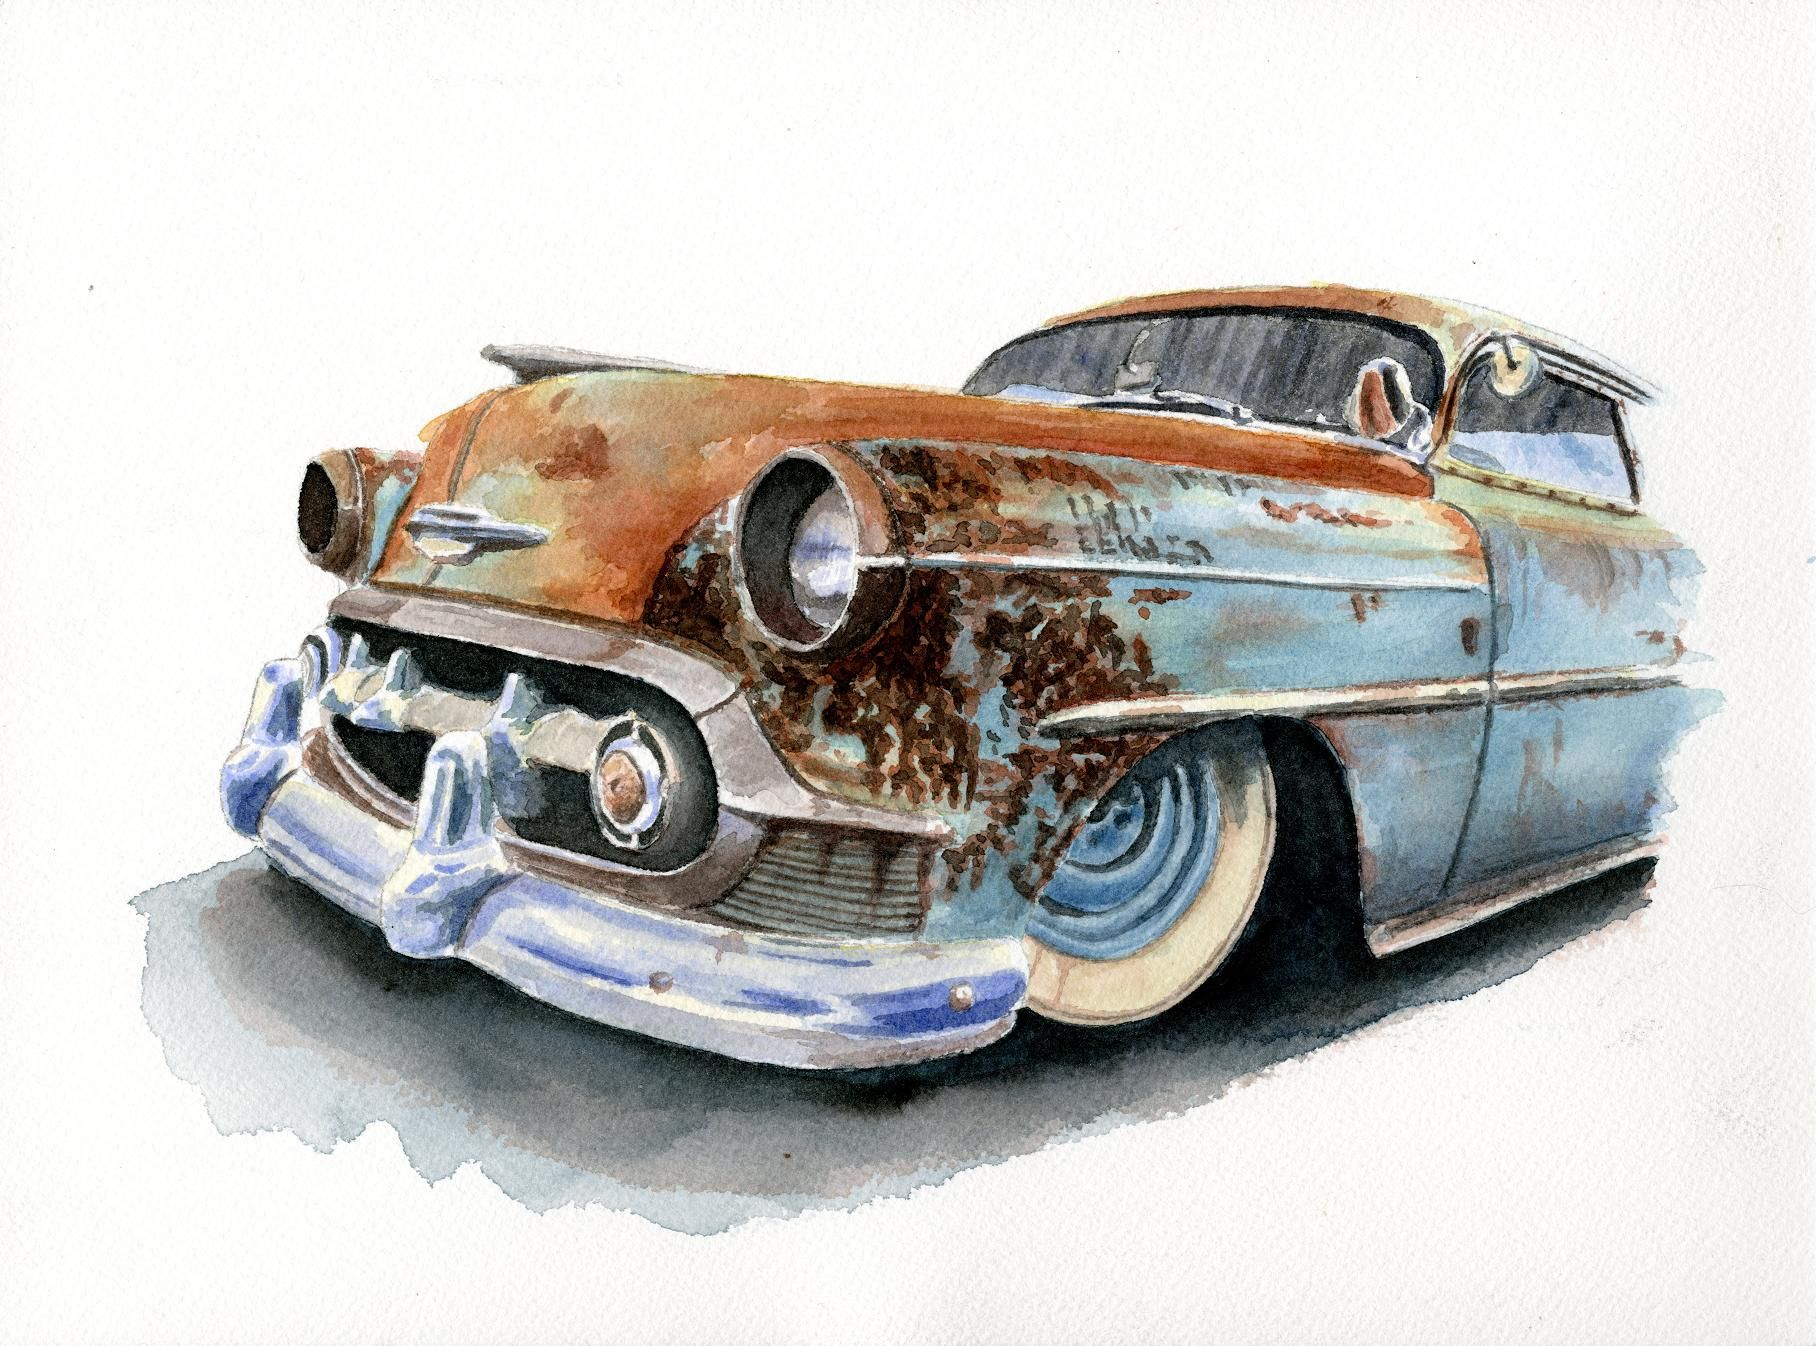 Best Car Art Images On Pinterest Hot Rods Rat Rods And